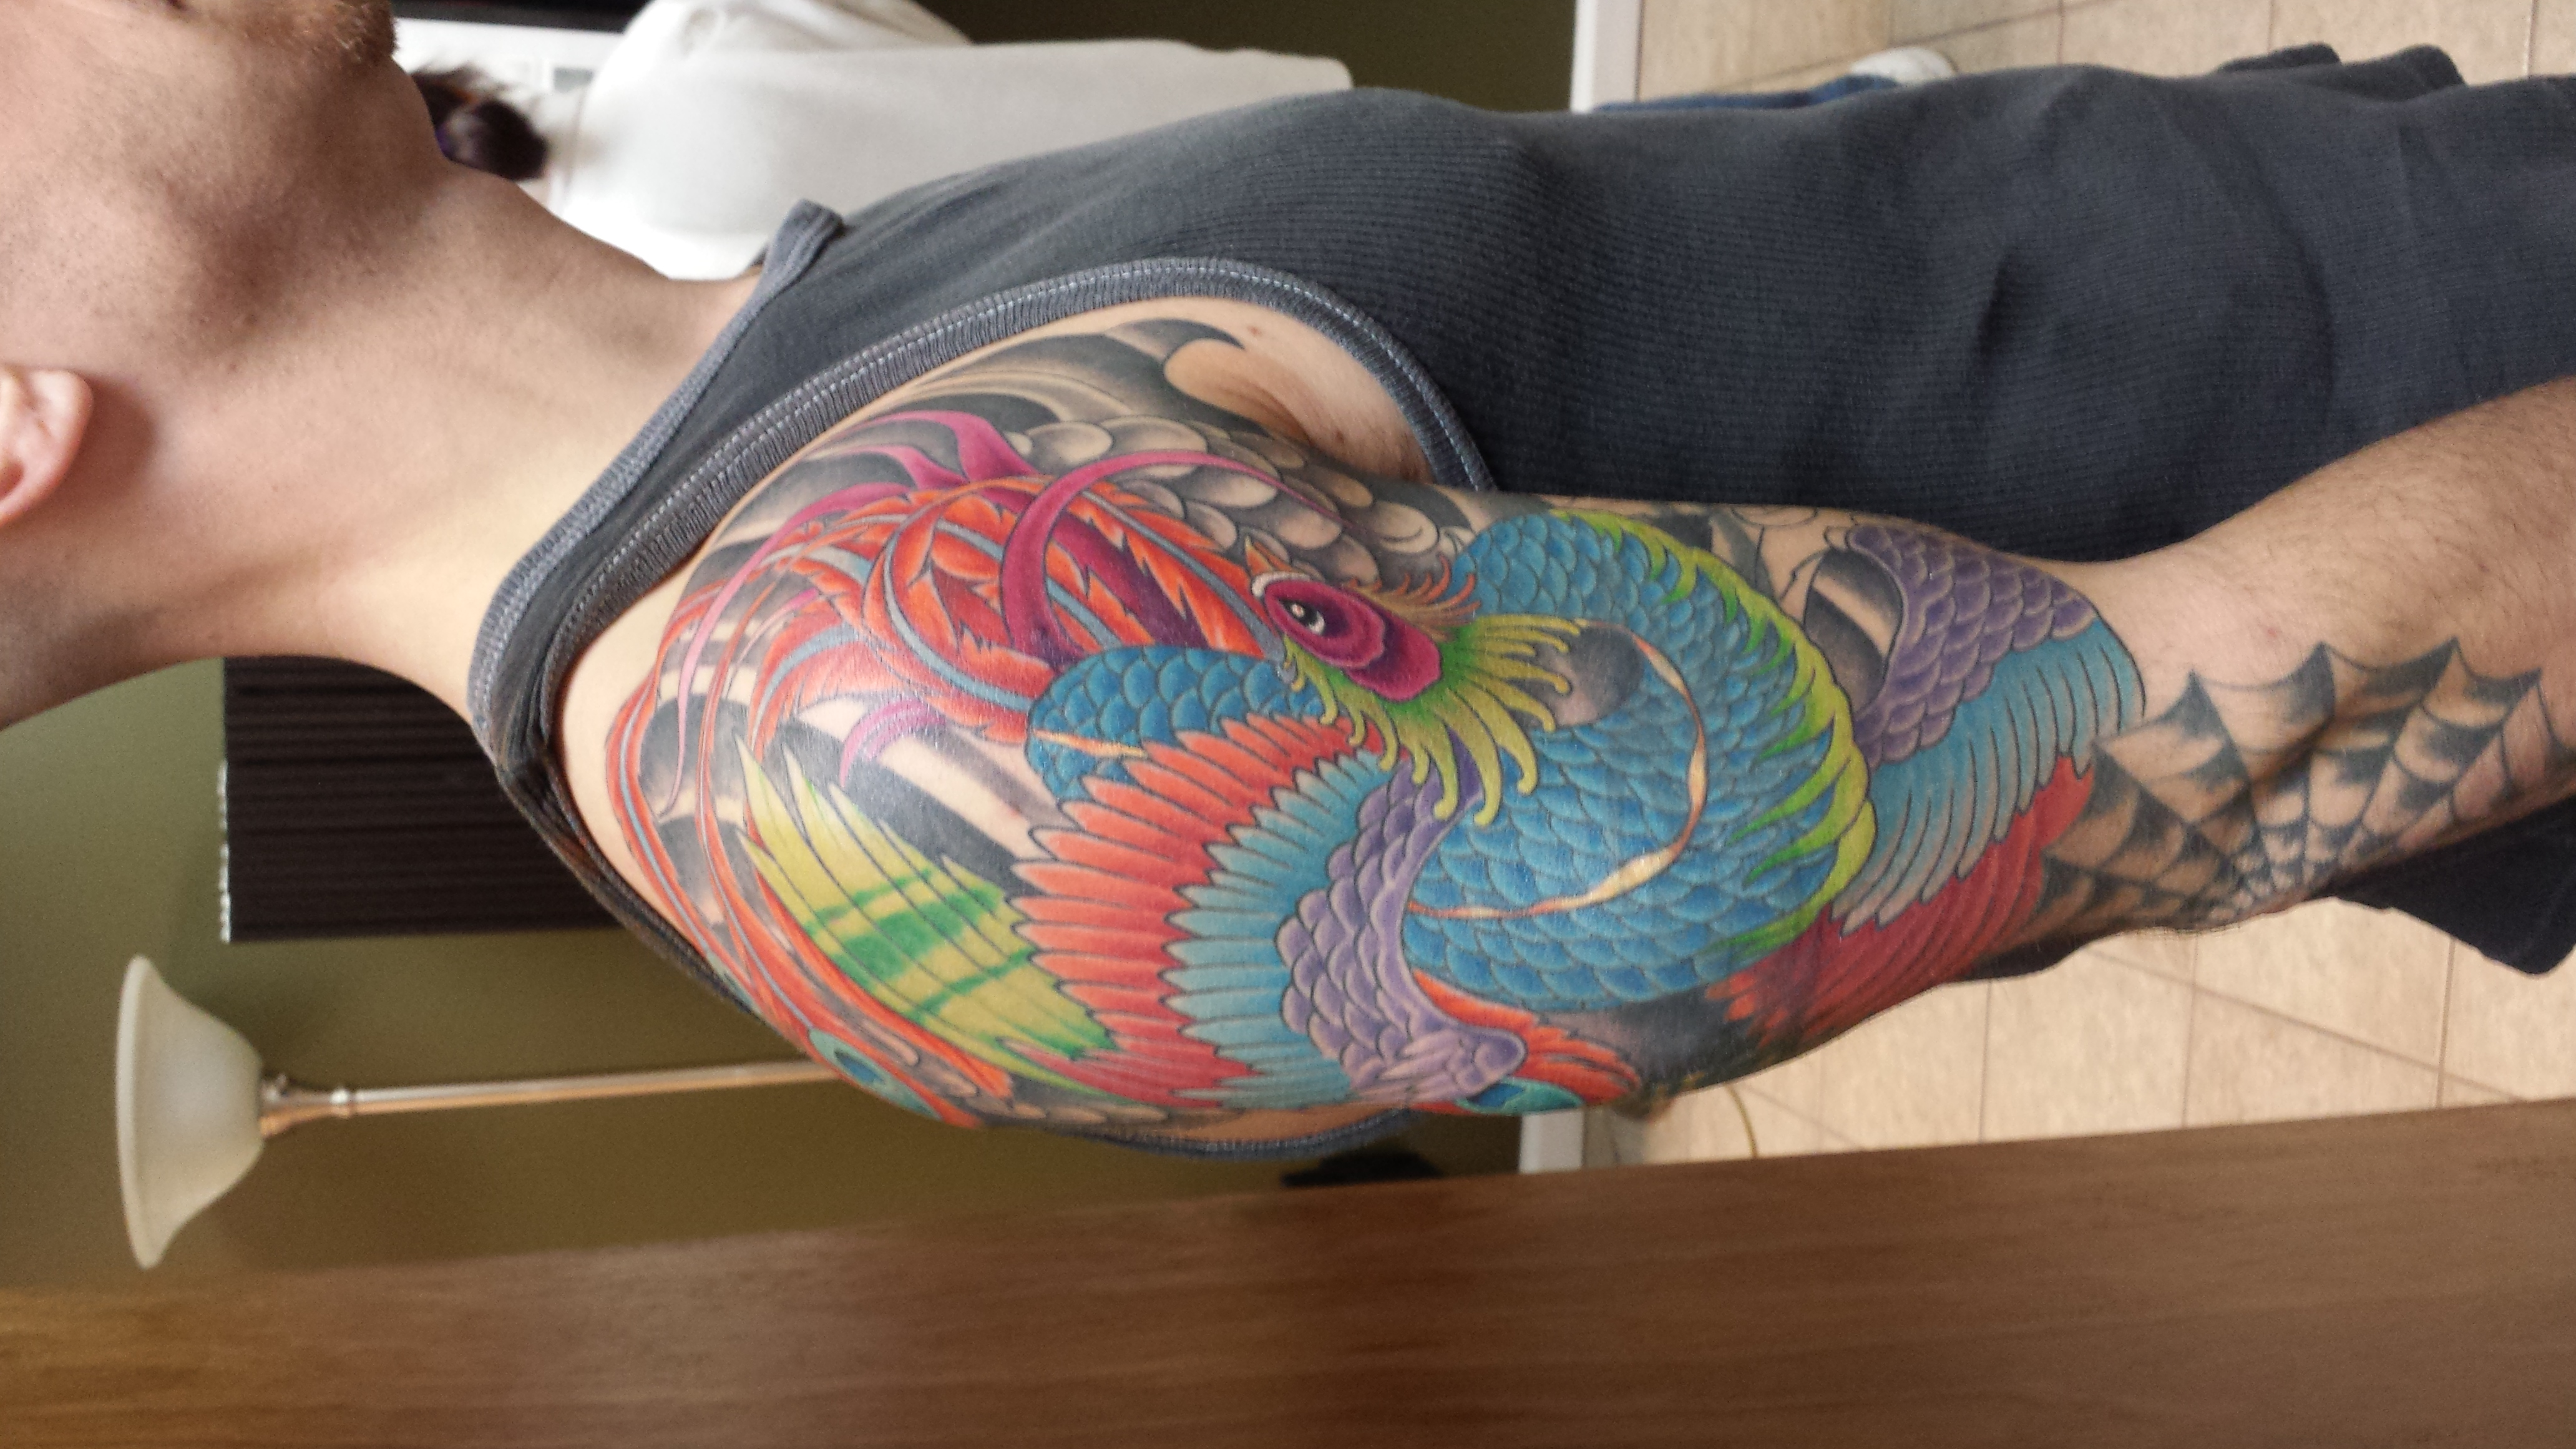 DONE BY JAMIE CASSABOON (IN PROGRESS, COVER-UP)